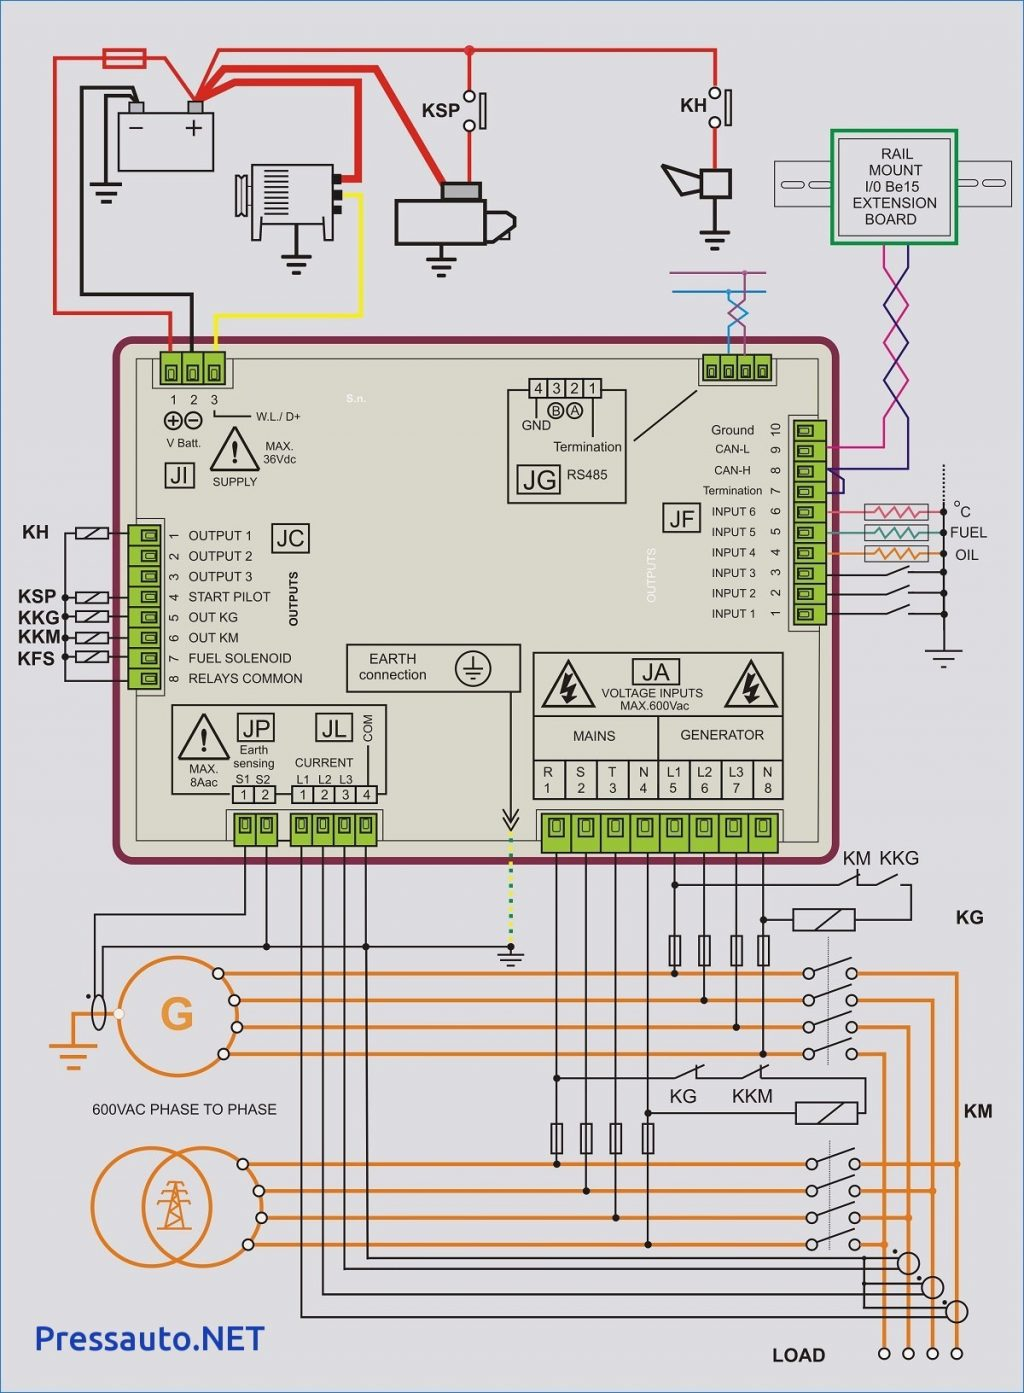 asco 917 wiring diagram gallery wiring diagram sample. Black Bedroom Furniture Sets. Home Design Ideas